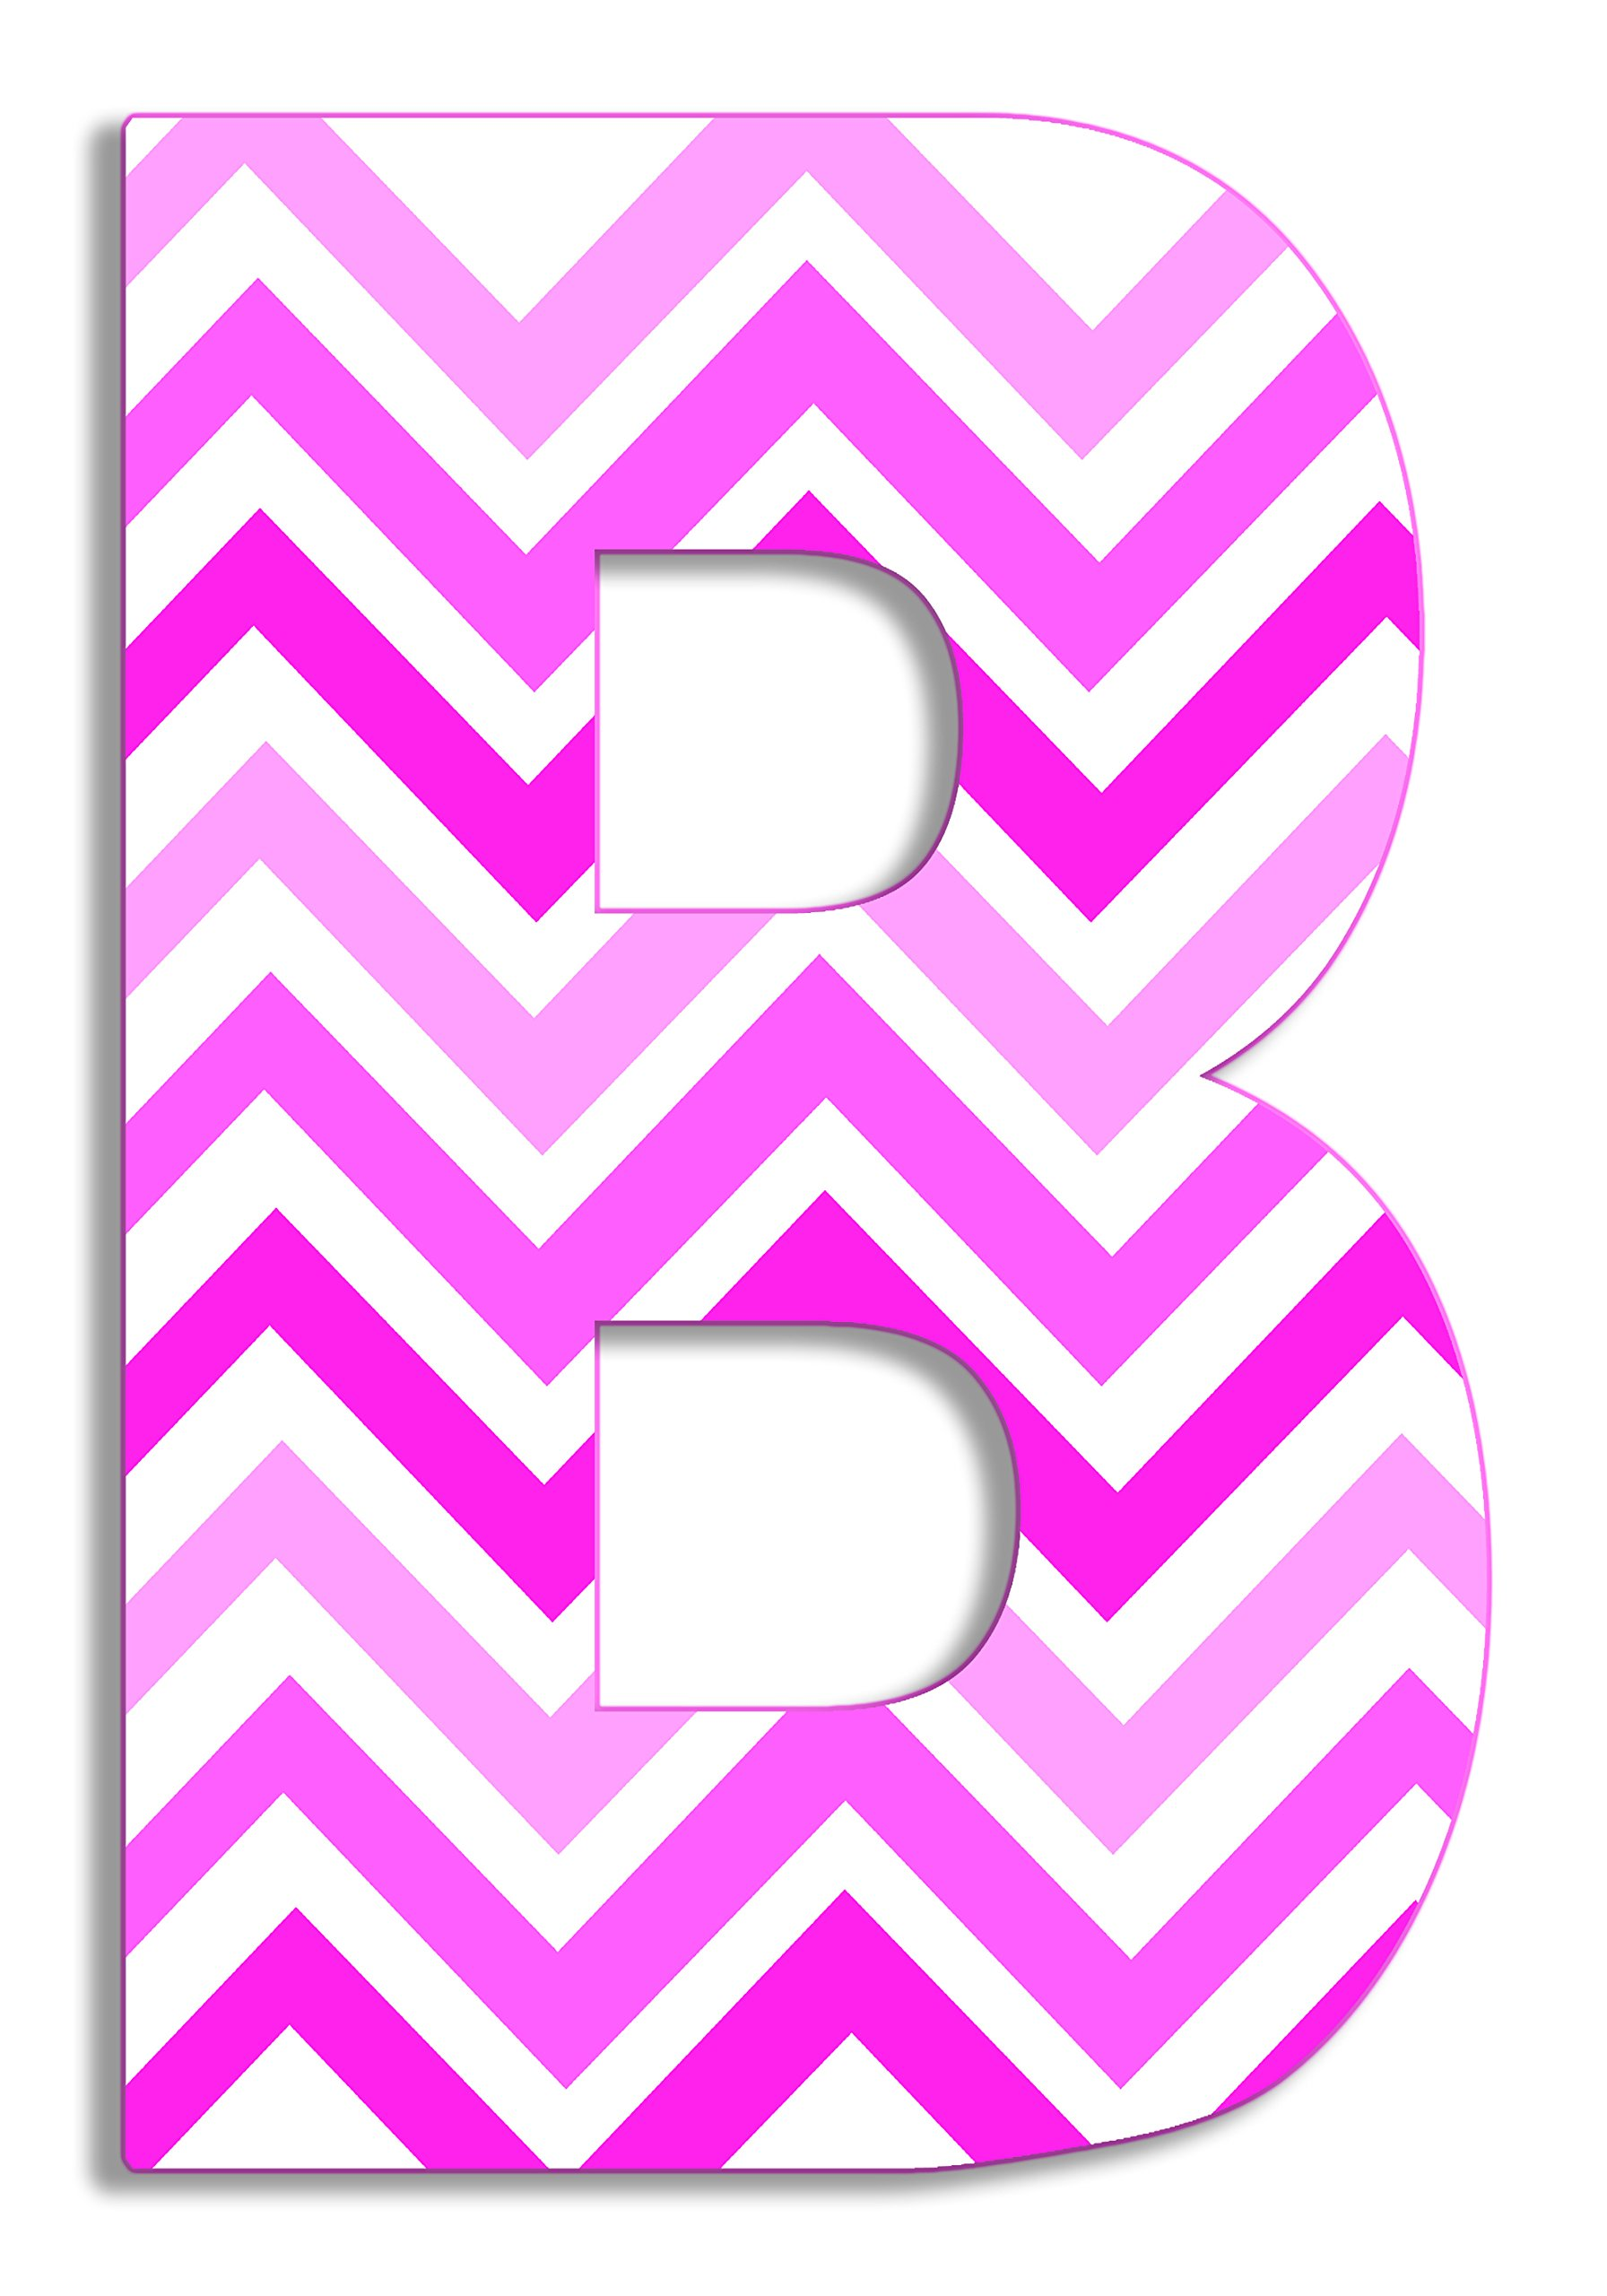 Stupell Home Décor Tri-Pink Chevron 18 Inch Hanging Wooden Initial, 12 x 0.5 x 18, Proudly Made in USA by The Kids Room by Stupell